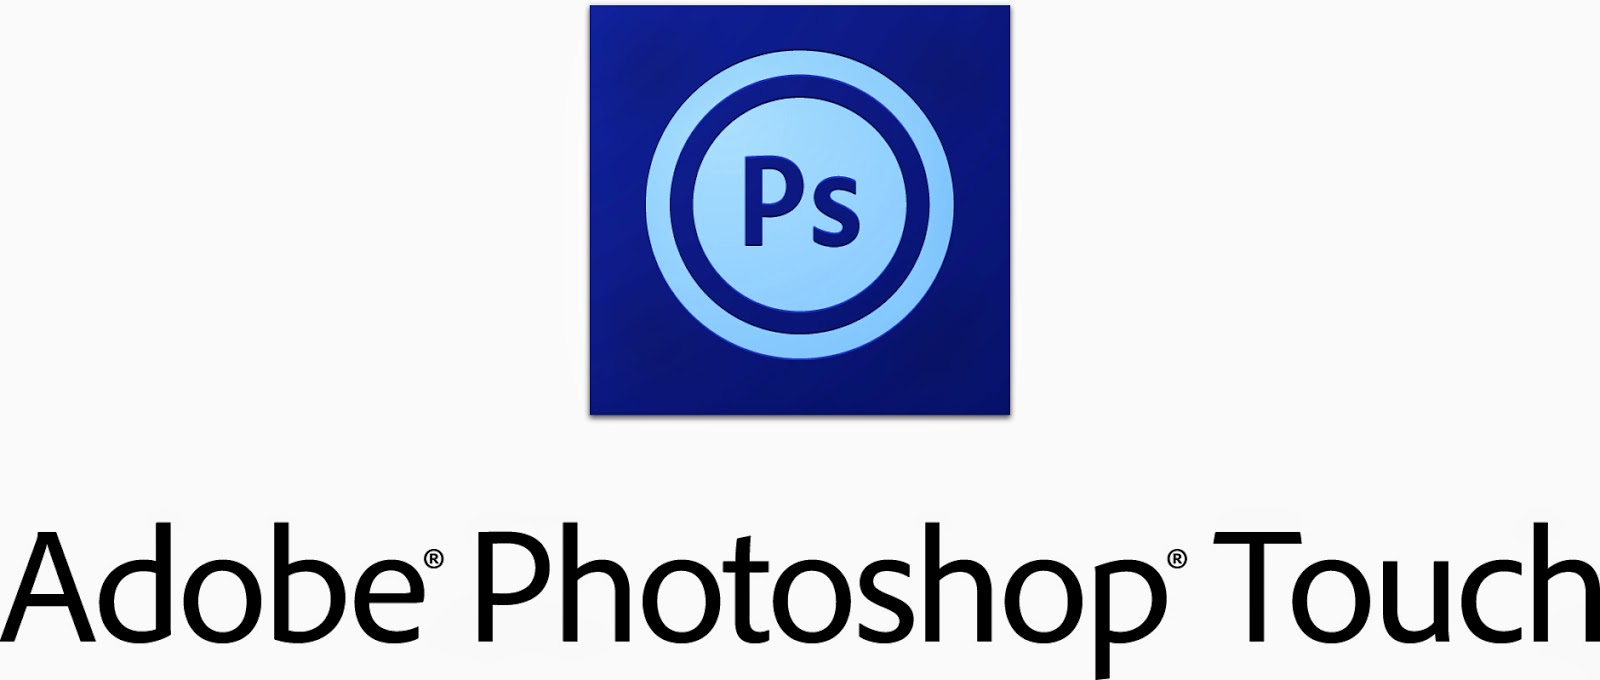 Download photoshop touch for phone v1. 2. 1 apk android app.